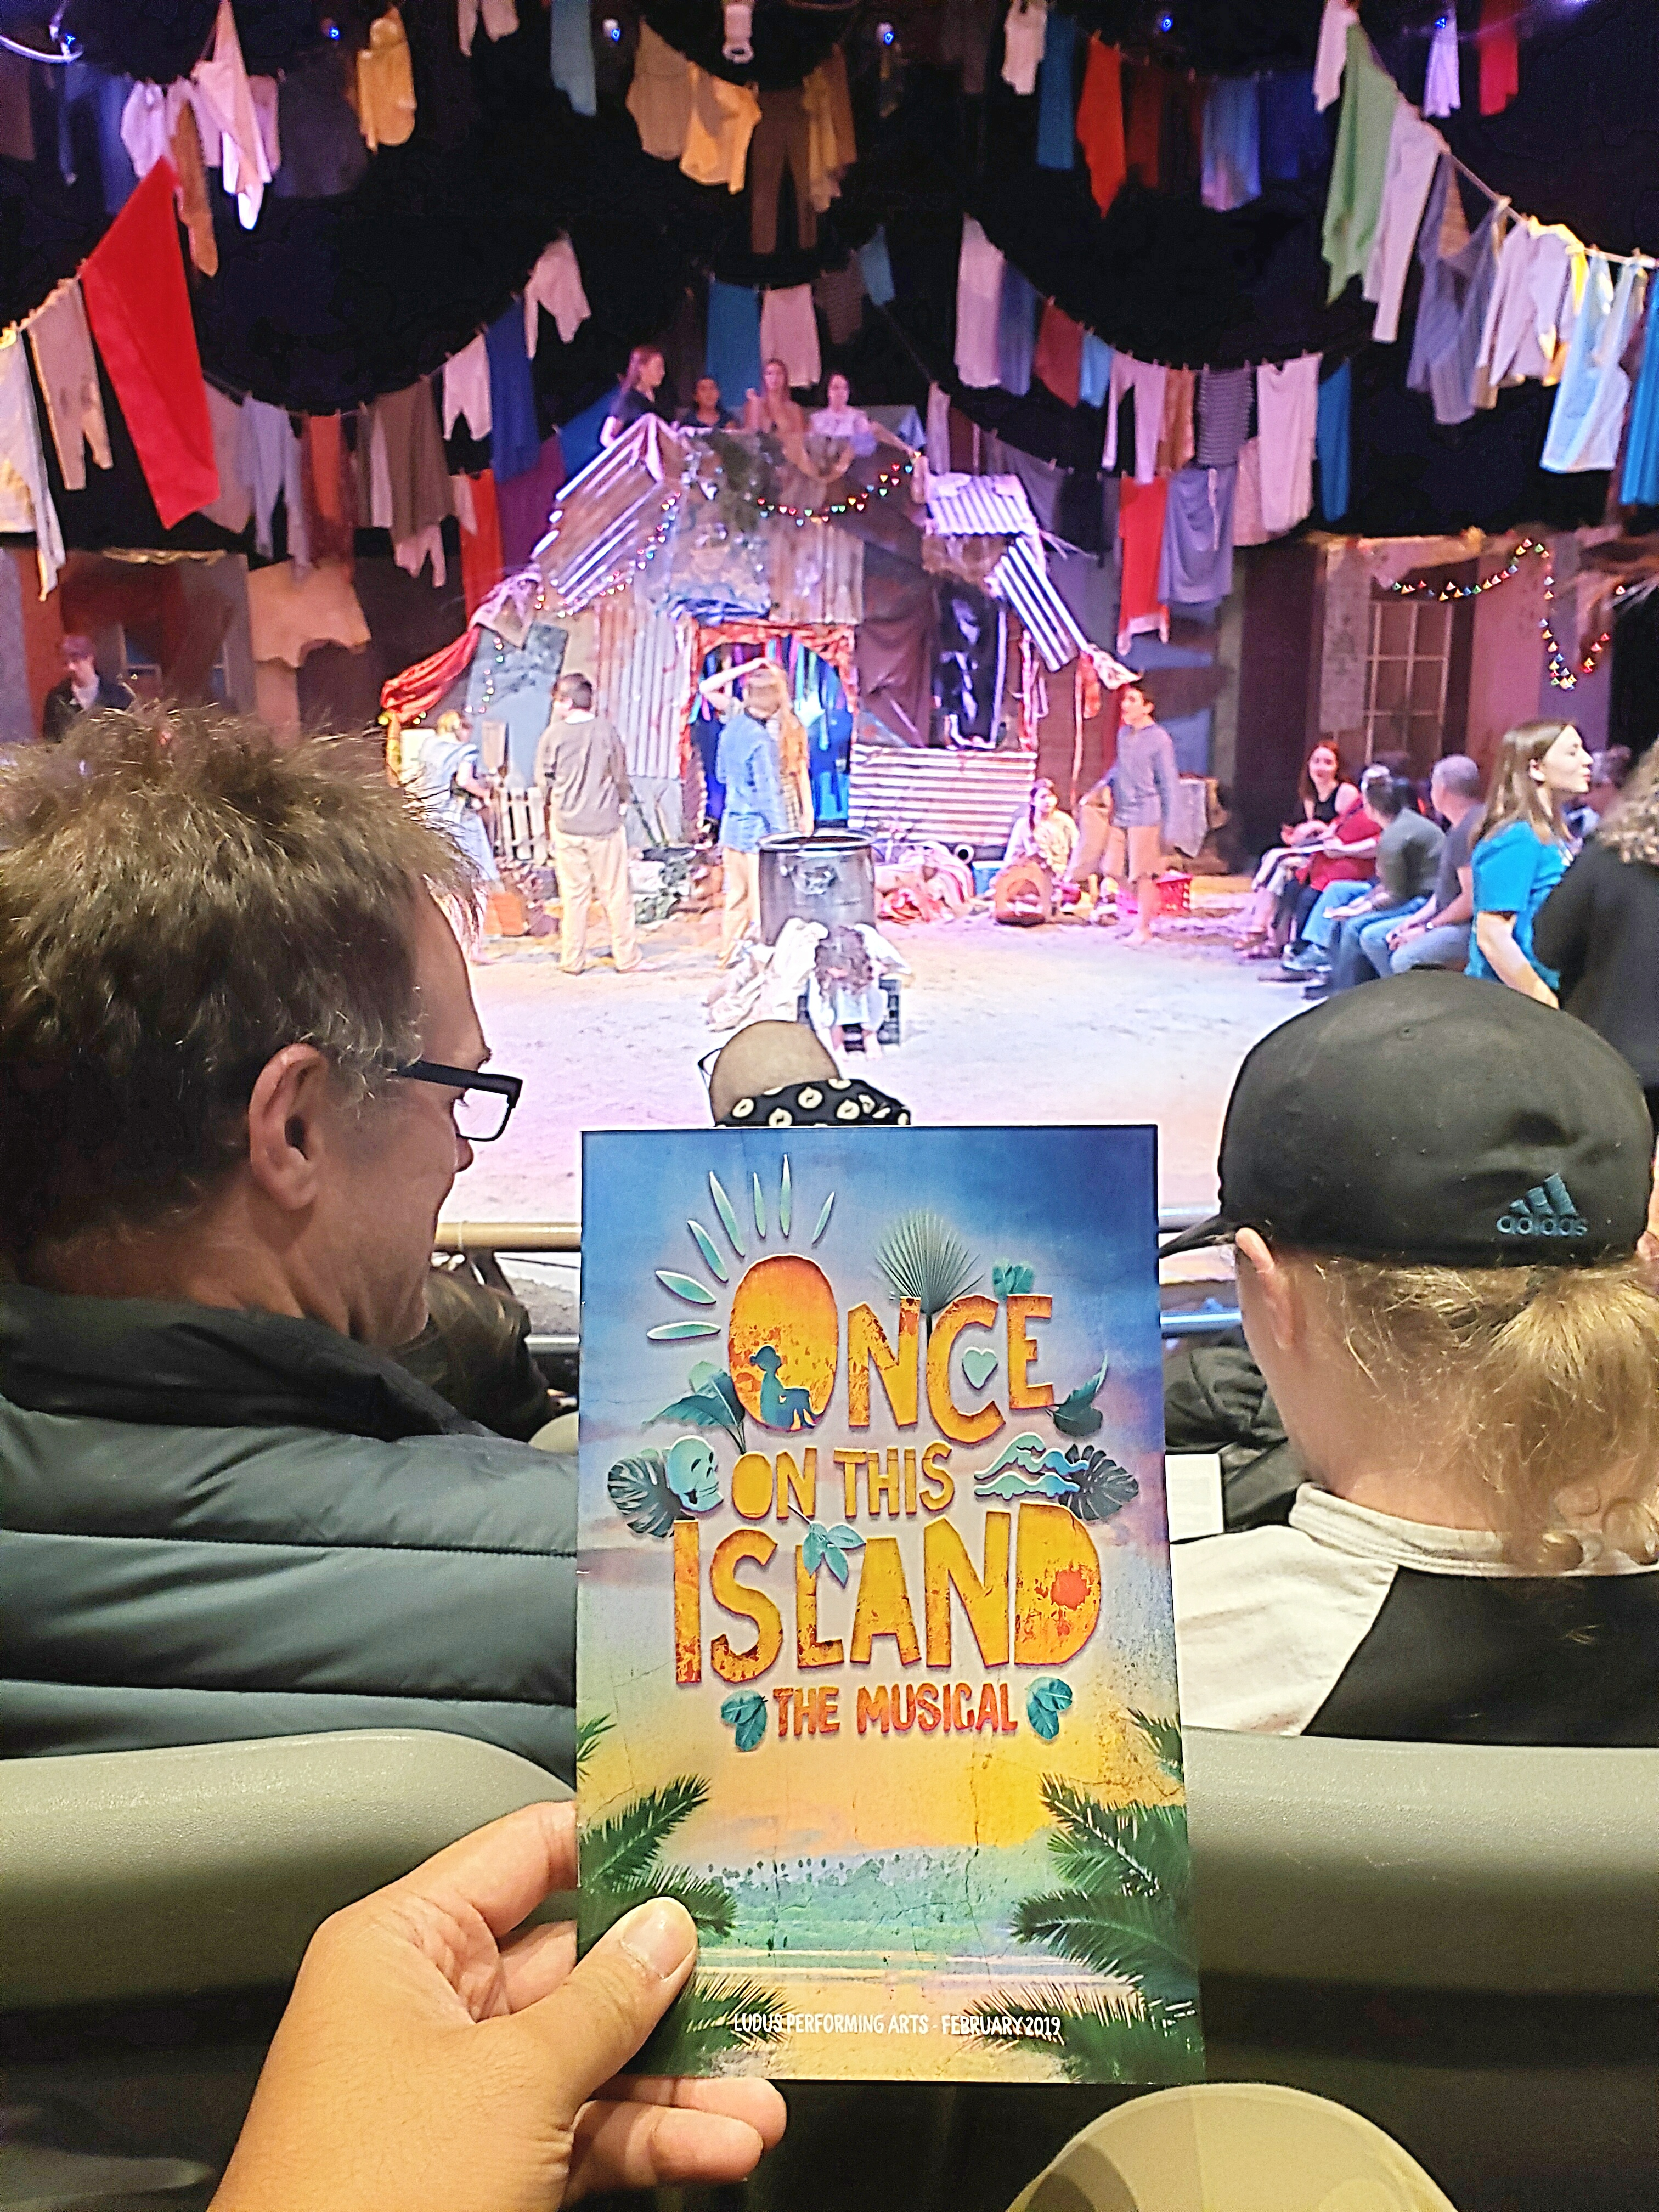 Closing performance of Once On This Island Broadway in an electric company of all places! Didn't realize this was a <18 y/o production :-/. But surprisingly promising talent & high budget ... I mean, there were live chickens, a pooping diapered goat, & sand. Actors should work on better front-facing blocking.